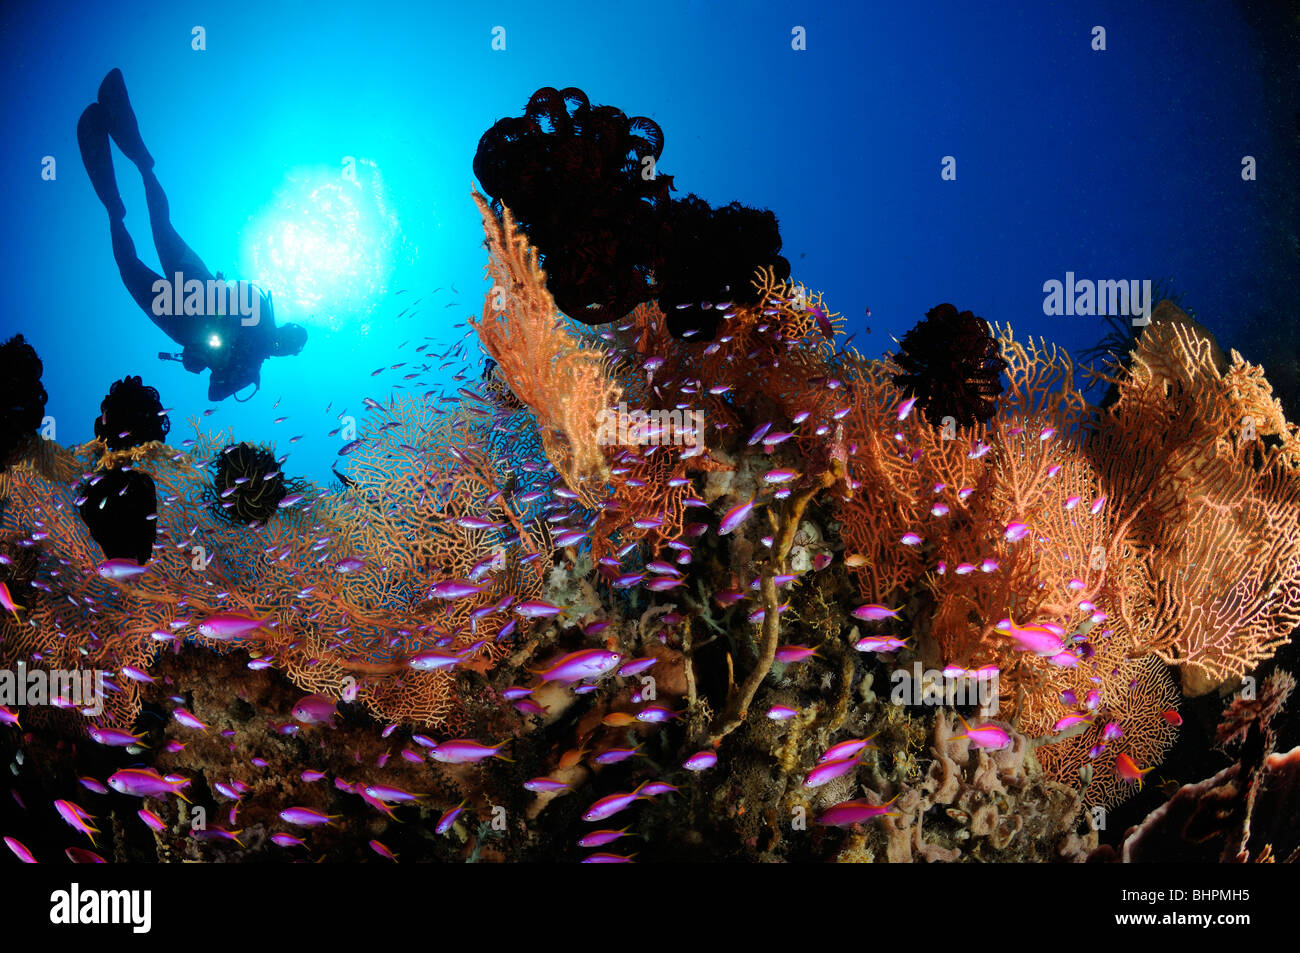 Pseudanthias tuka, scuba diver with colorful coral reef and Purple queen and soft corals, Alam Batu, Housereef, Stock Photo